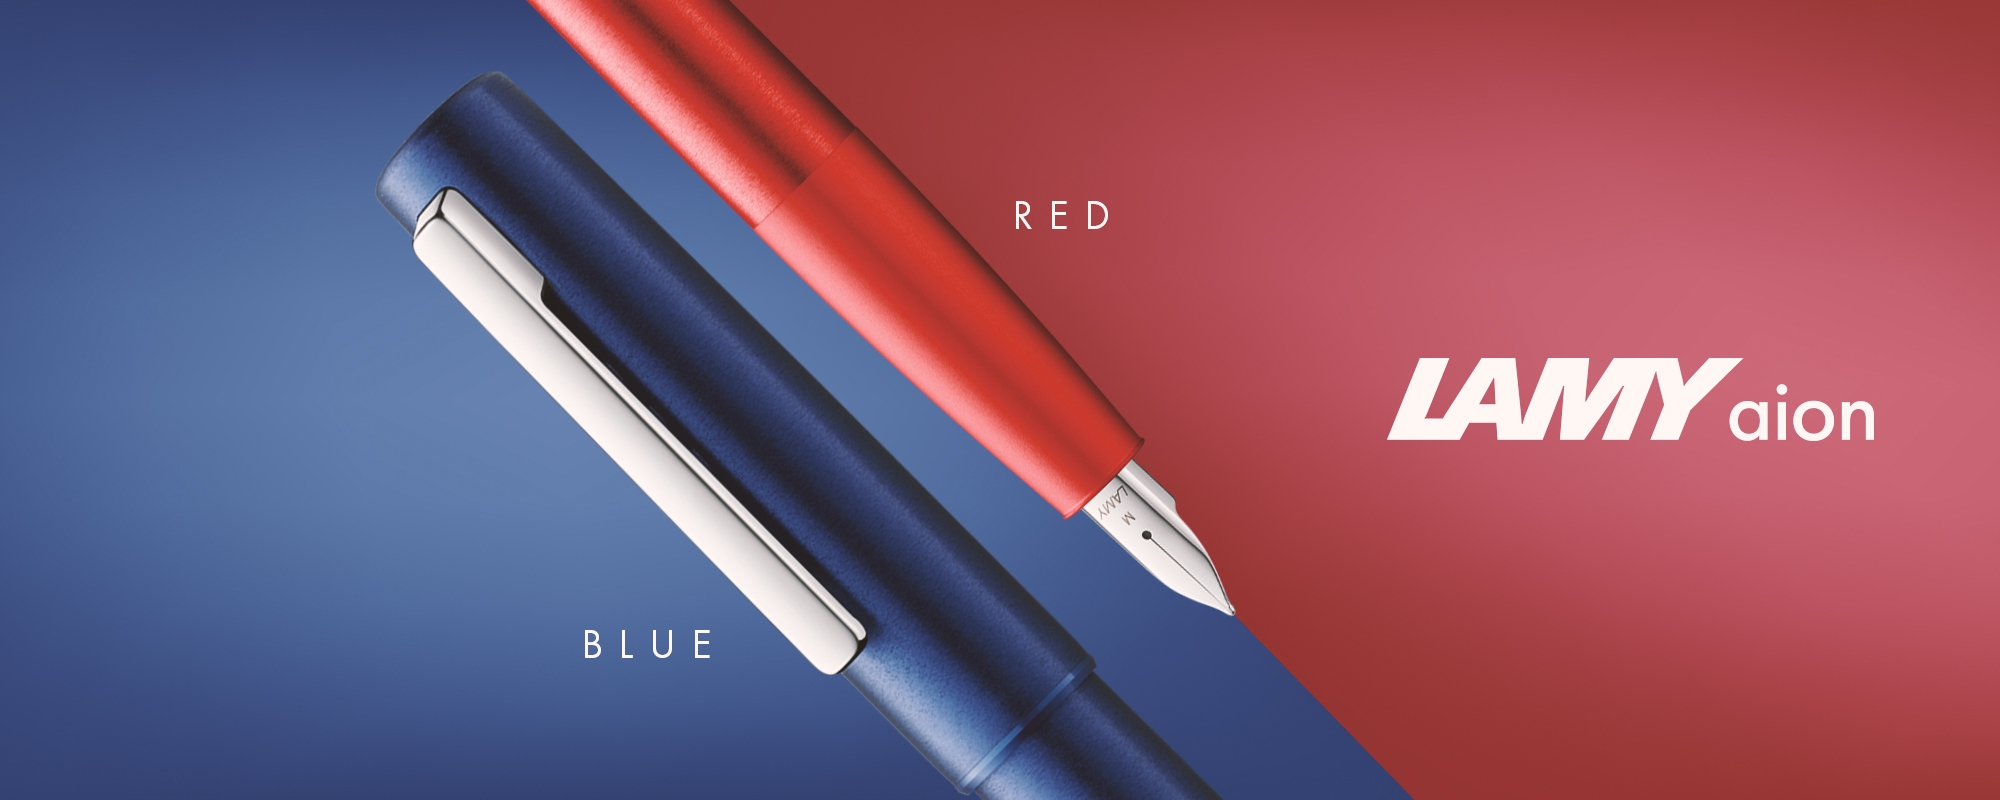 LAMY aion Blue Red